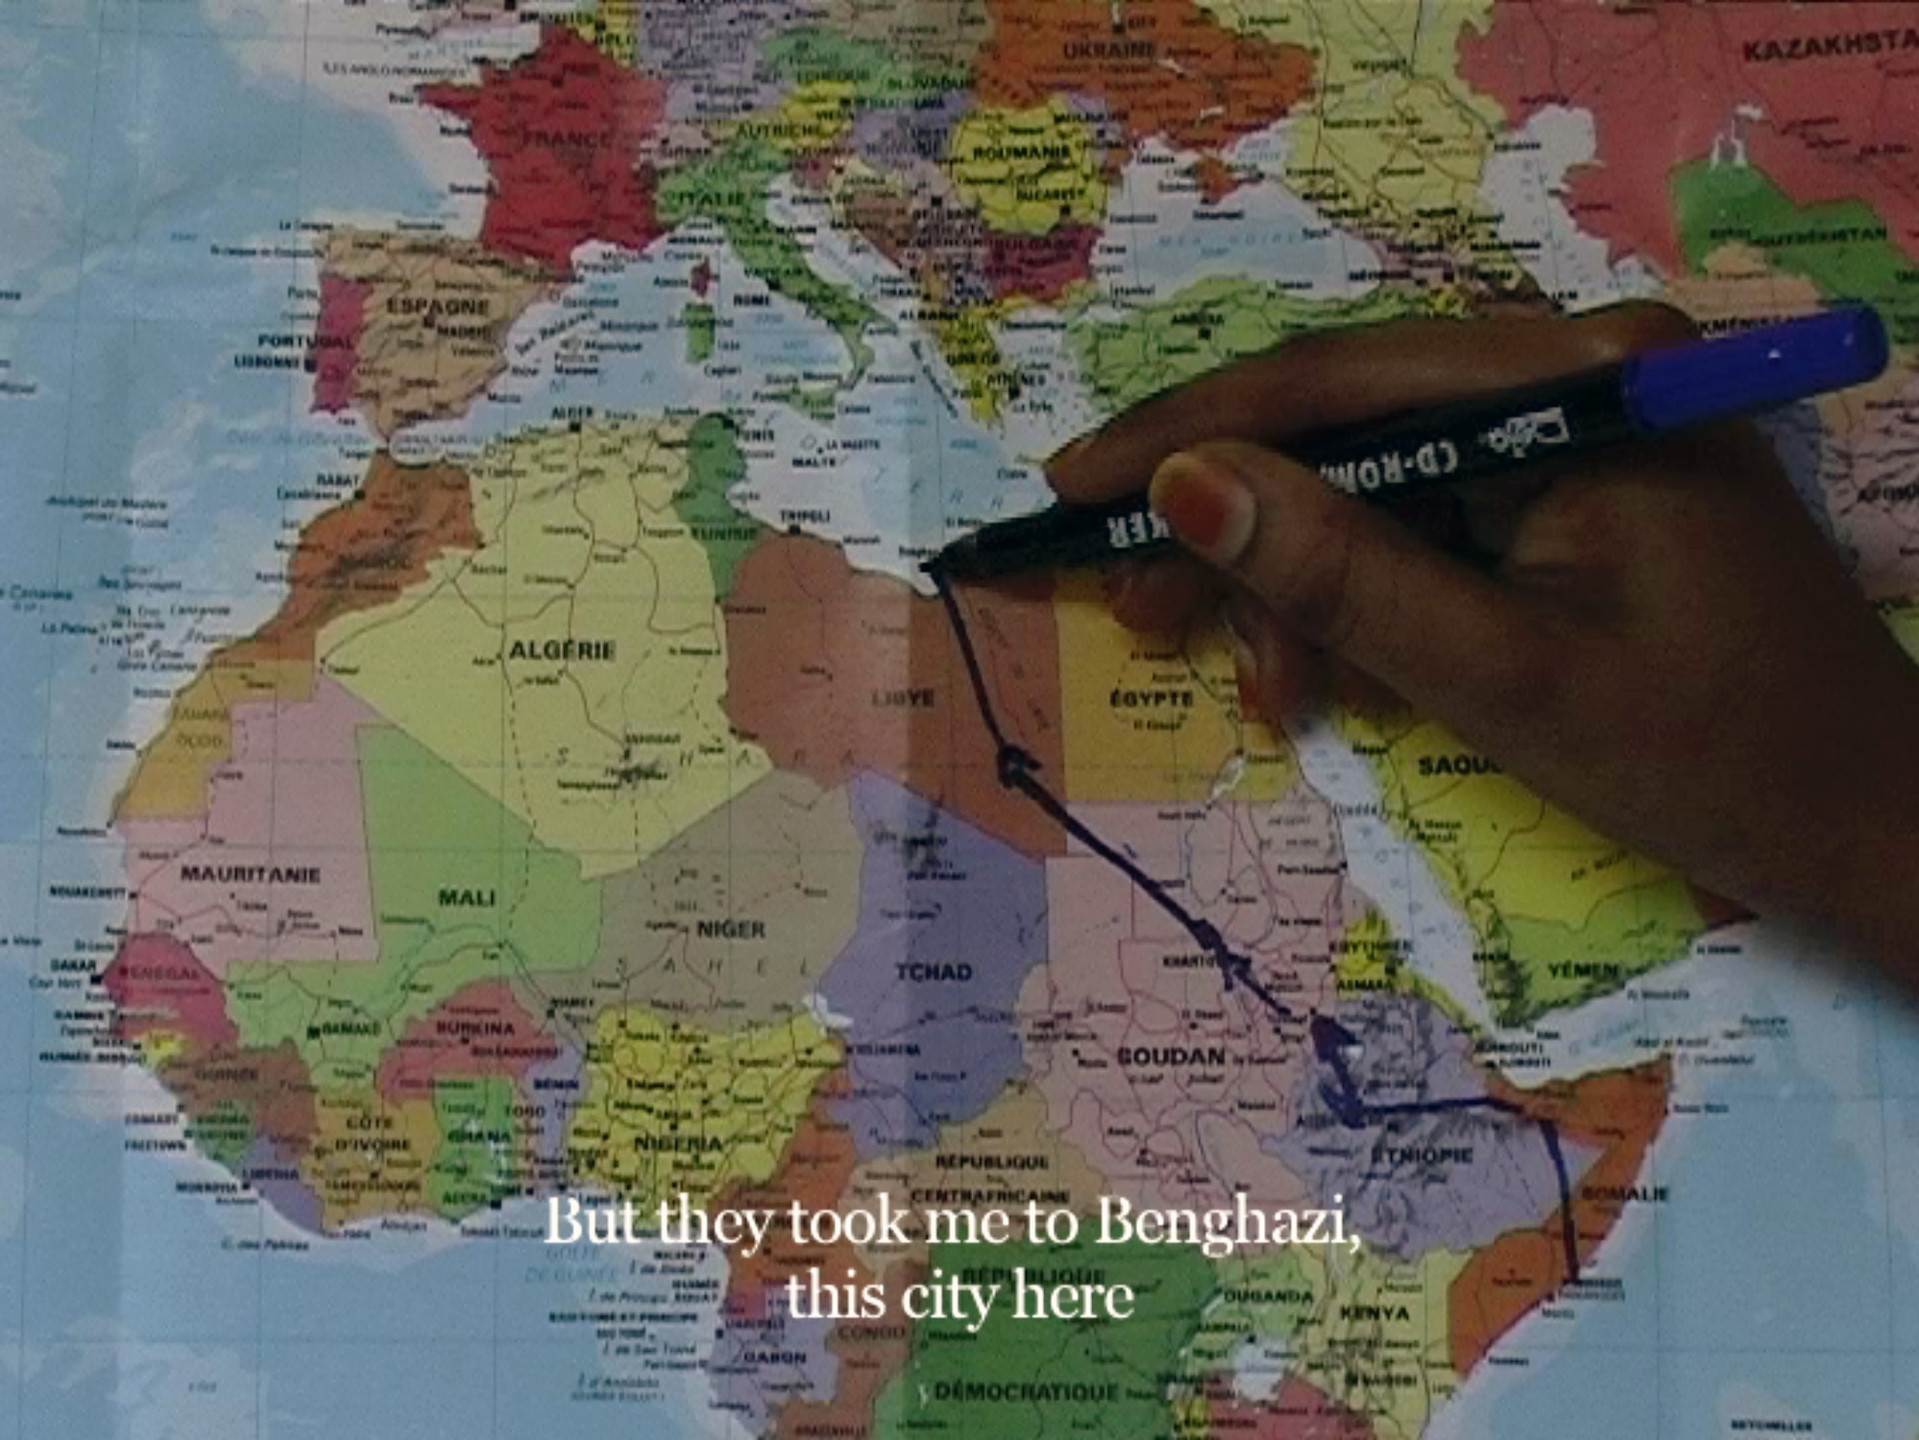 Bouchra Khalili. The Mapping Journey Project. 2008-2011